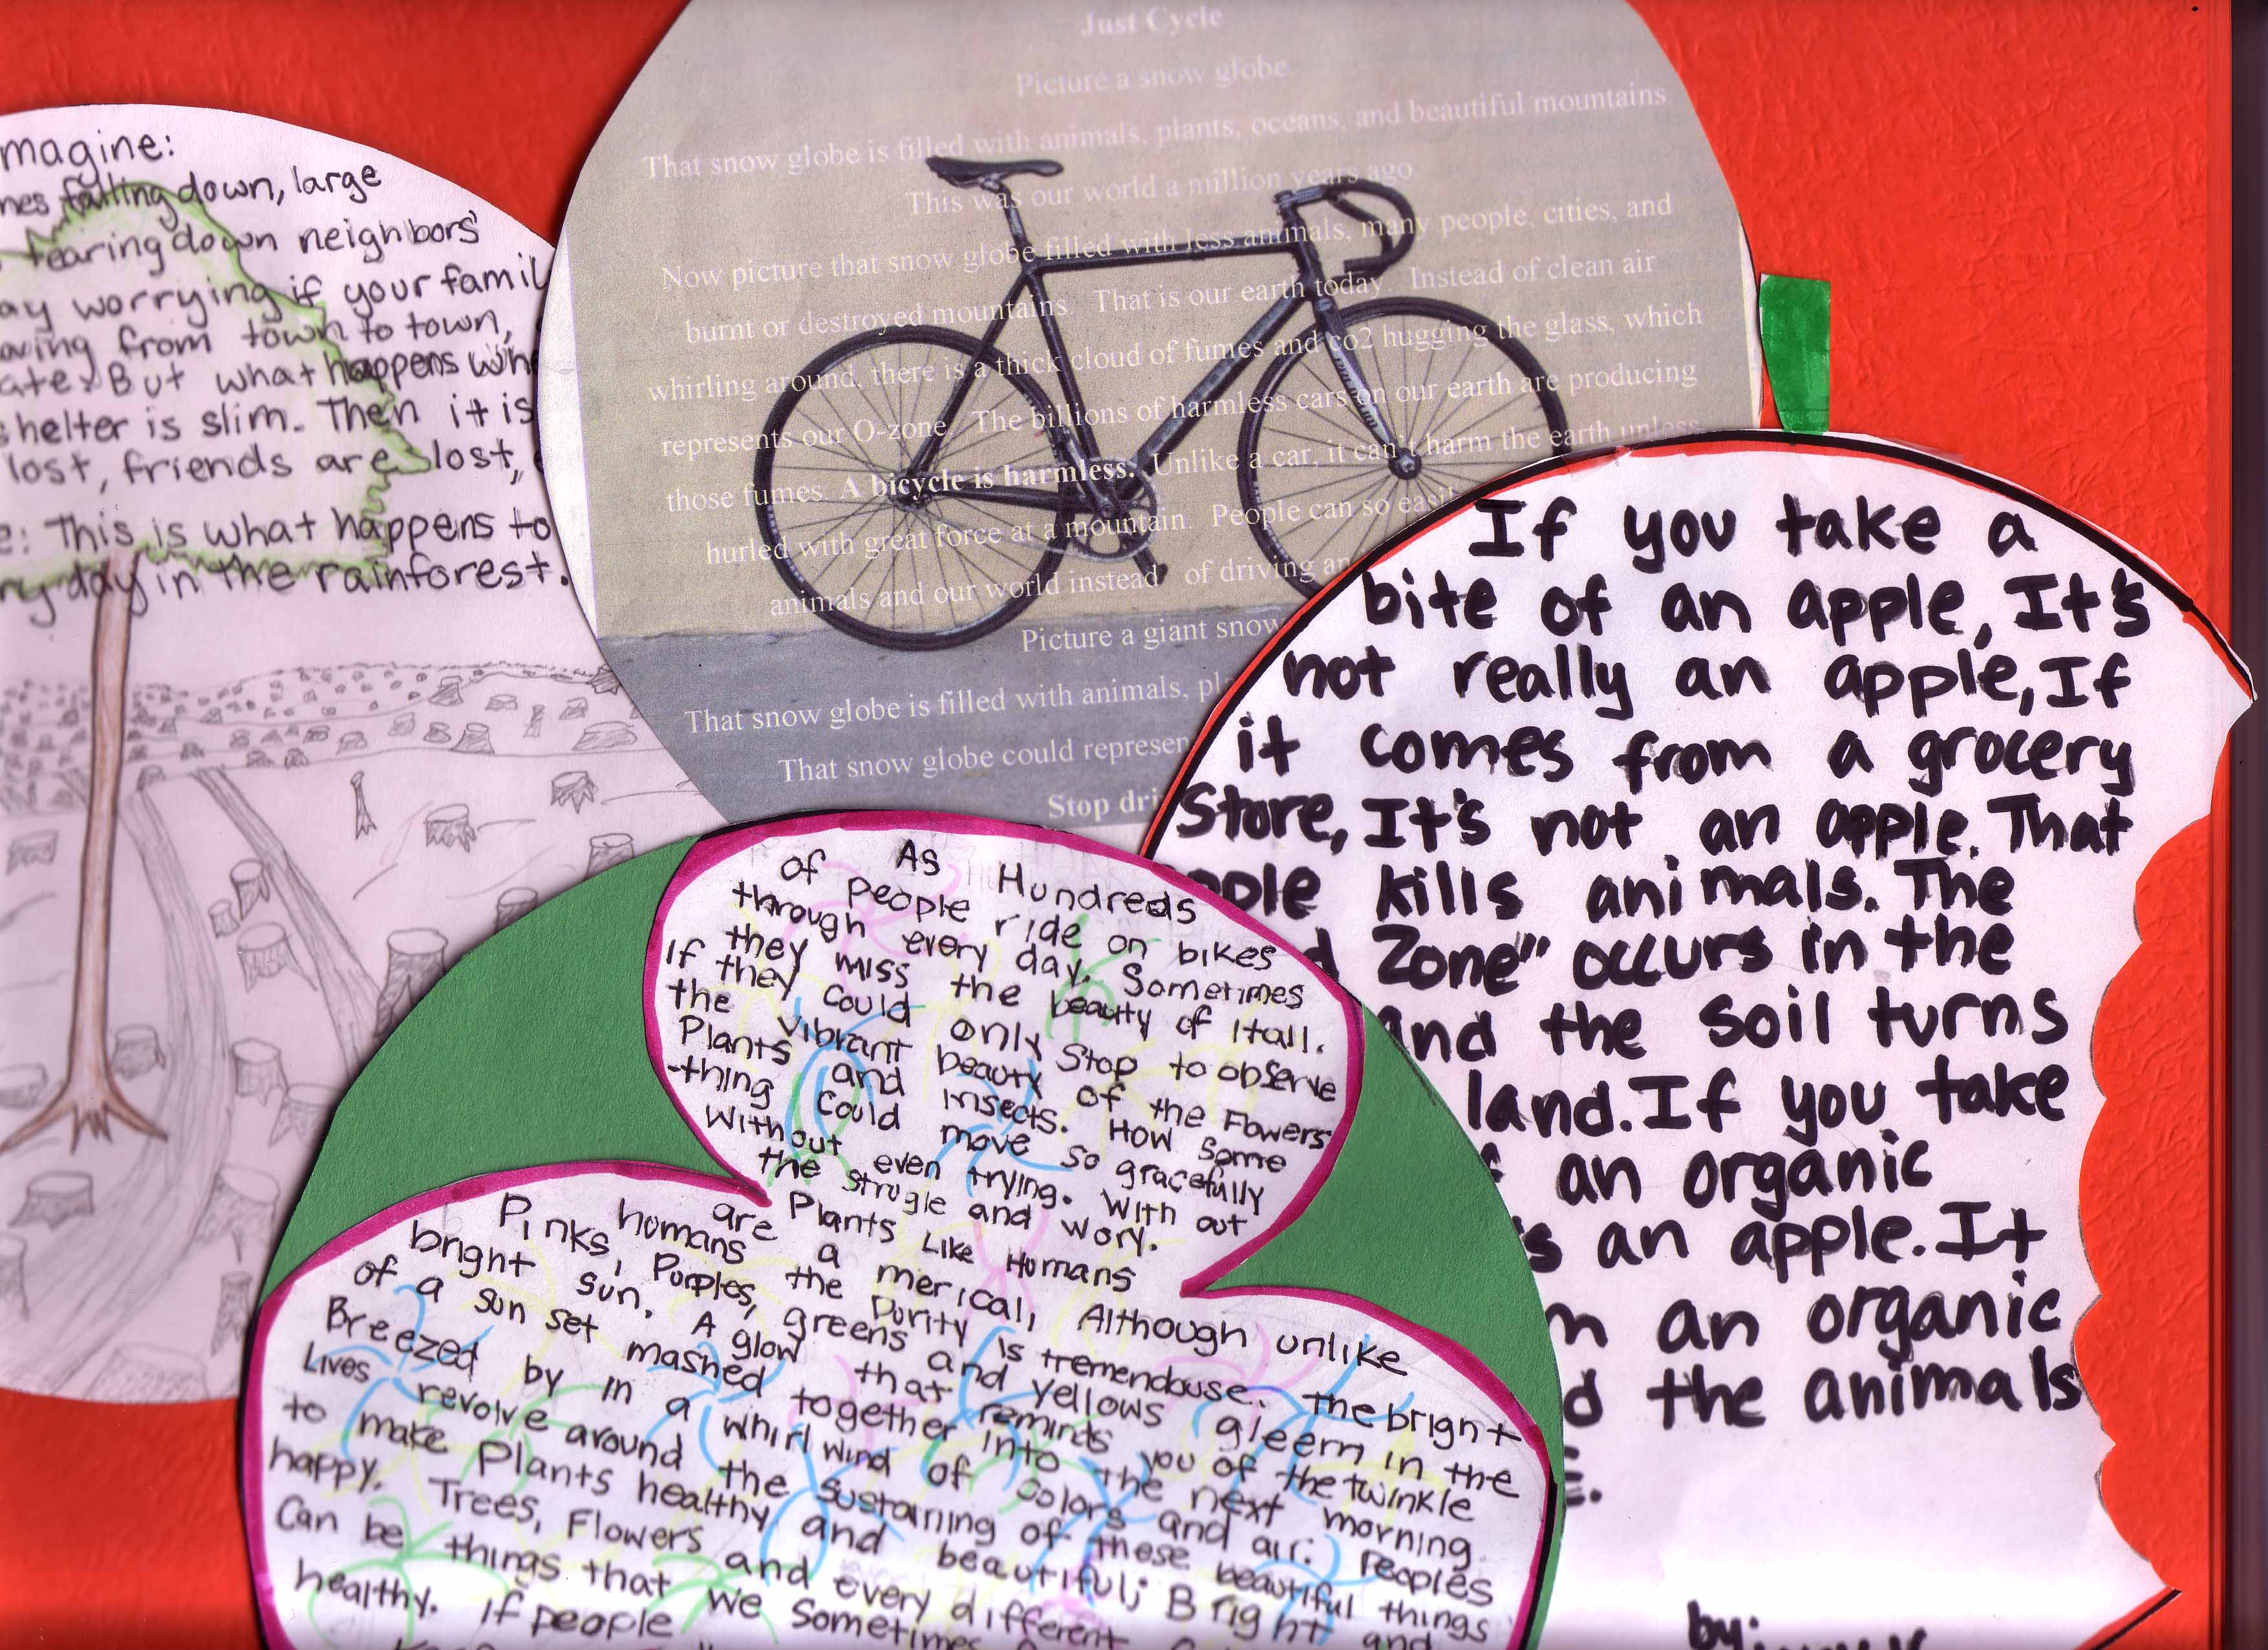 Principal Letters Uncategorized Mousetrap Catapult Diagram College Of Arts And Sciences As A Way To Connect Tuesdays Events With Our Mlk Assembly We Also Listened An Excerpt From The Speech Given By Barack Obama Last Year On